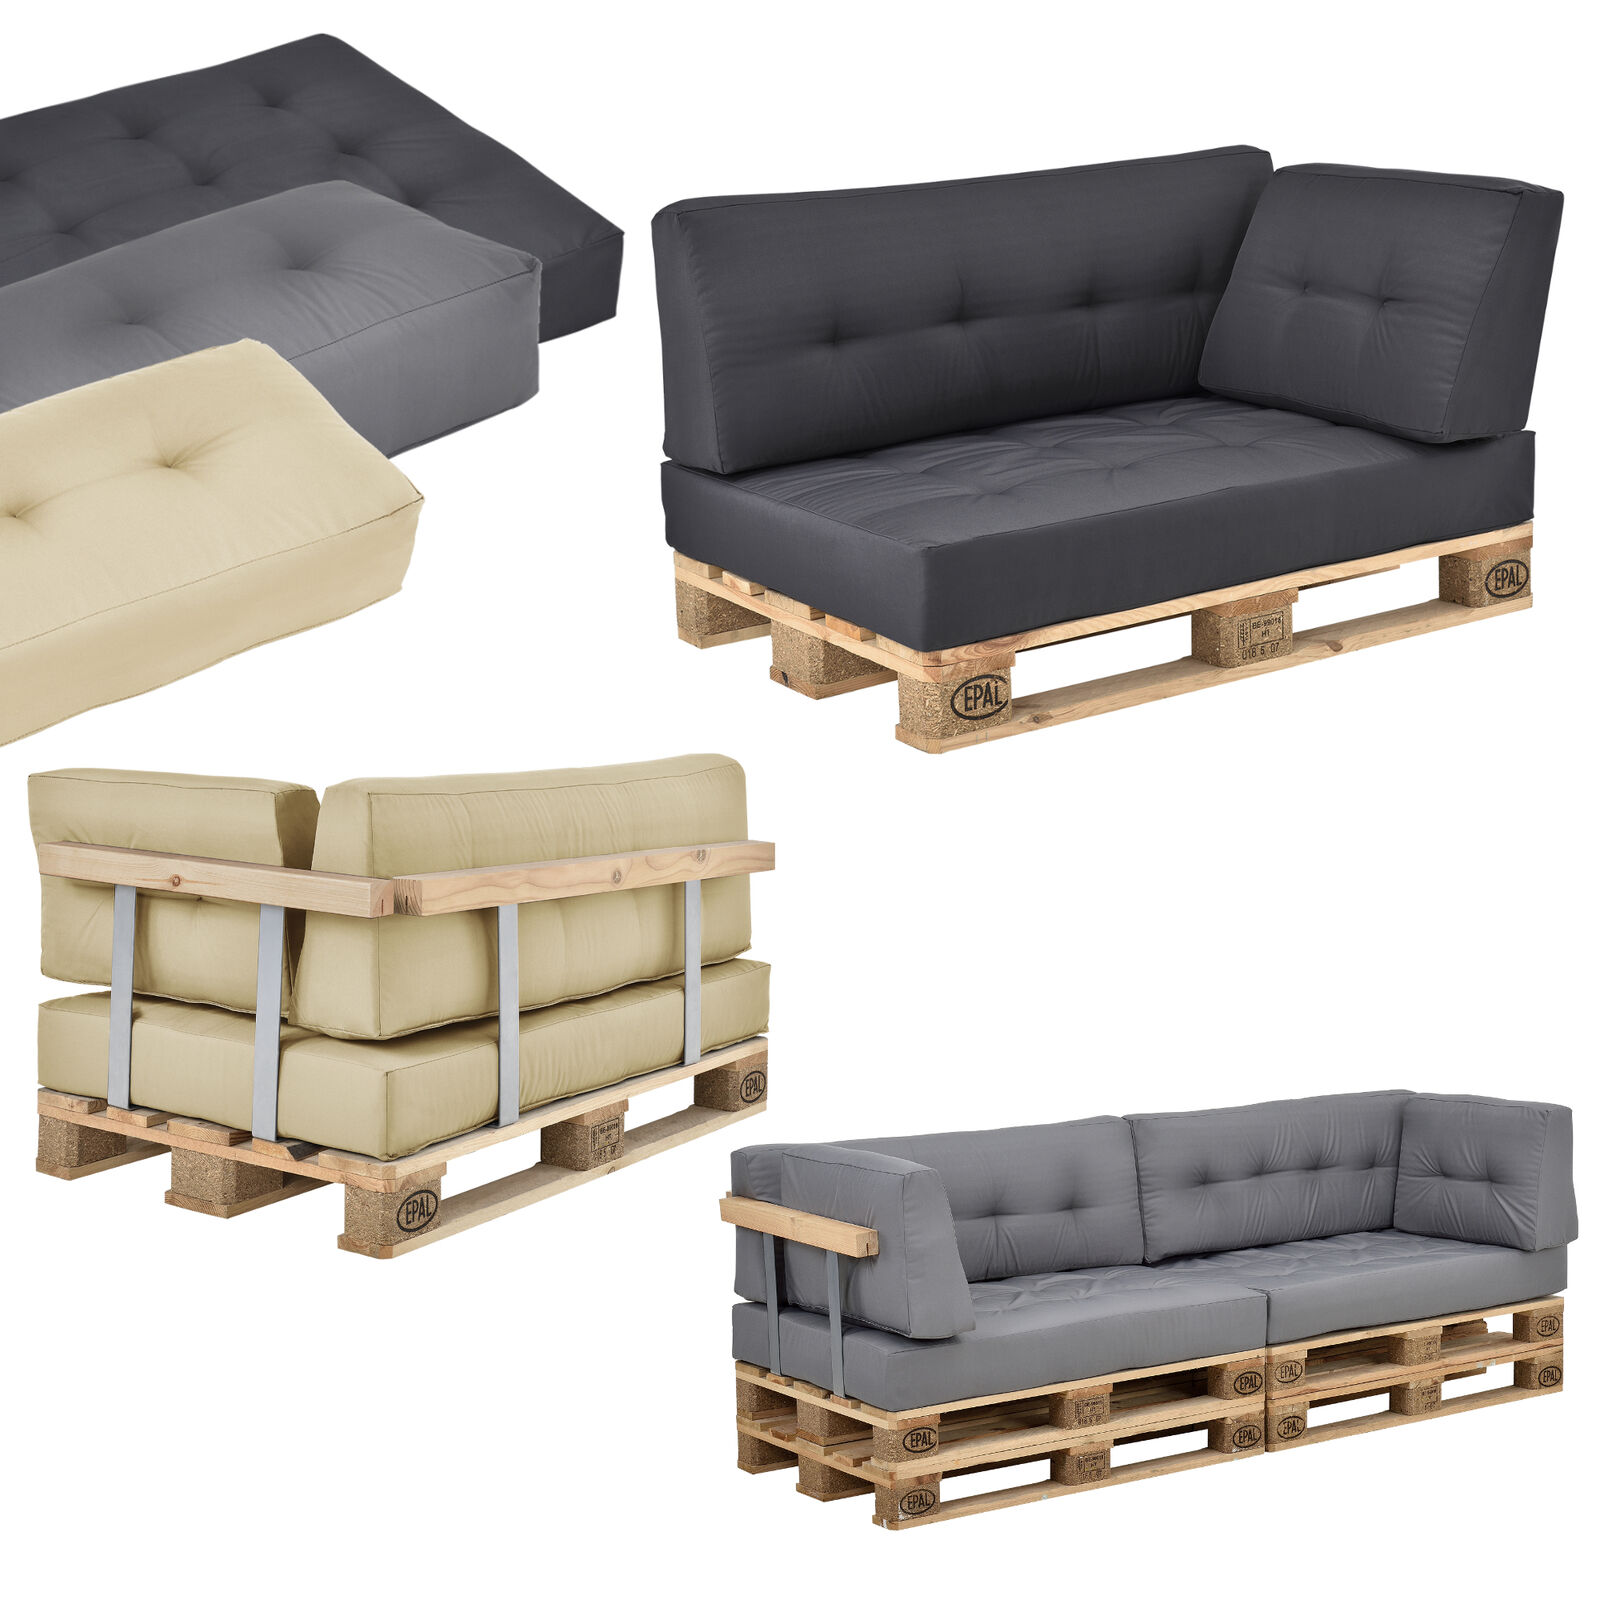 en casa palettenkissen in outdoor paletten kissen sofa polster sitzauflage eur 23 99. Black Bedroom Furniture Sets. Home Design Ideas